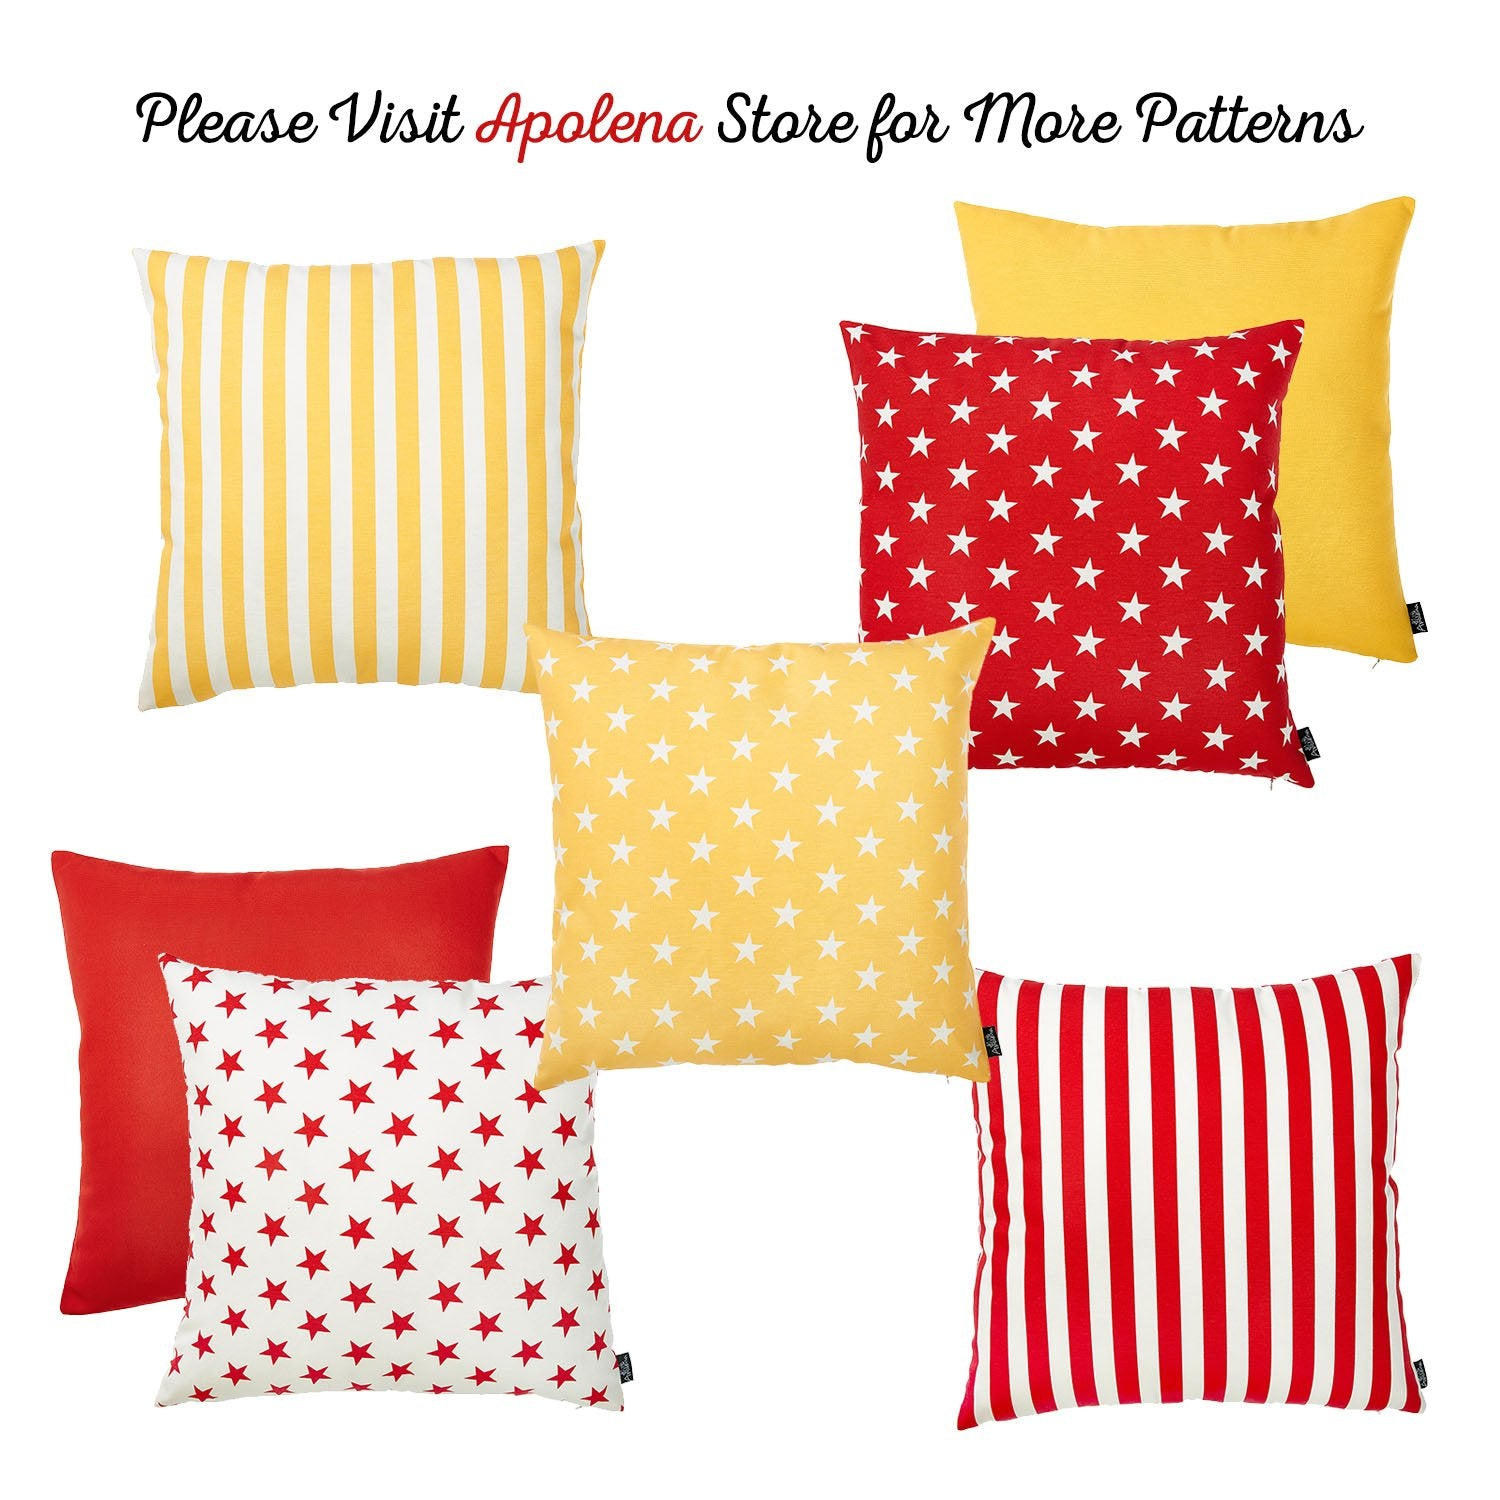 Easy Care Yellow Stars Decorative Throw Pillow Cover Home Decor